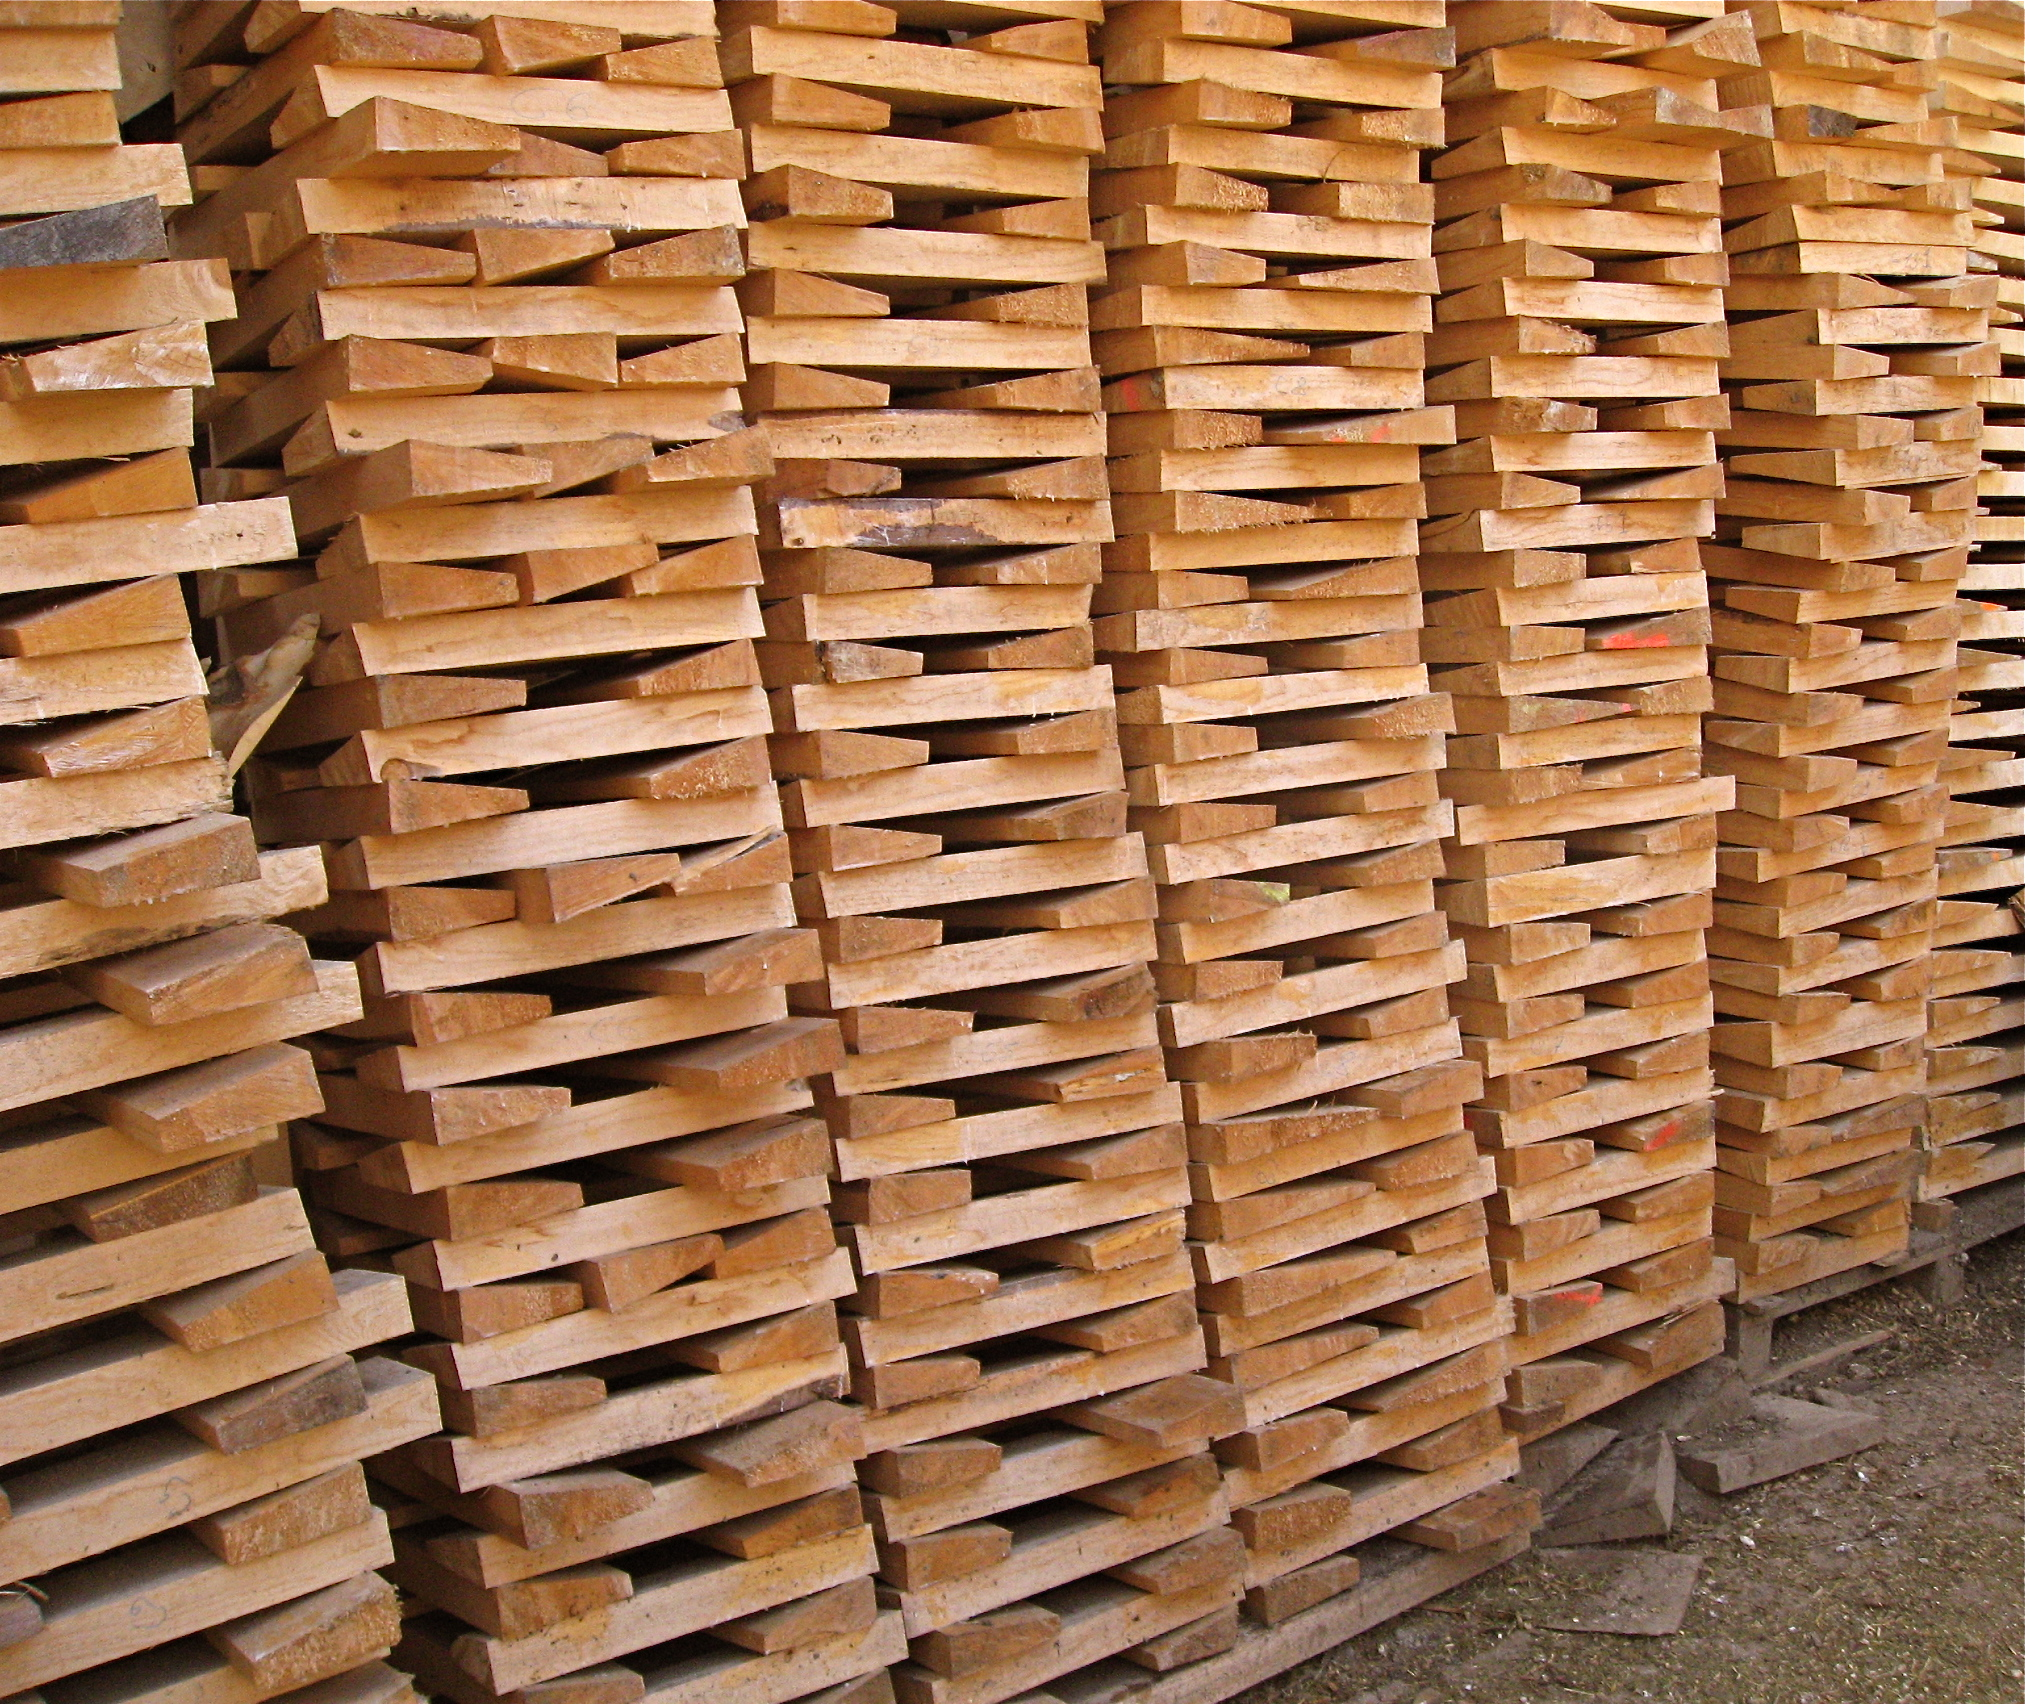 Wedges of violin wood stacked to season in Germany